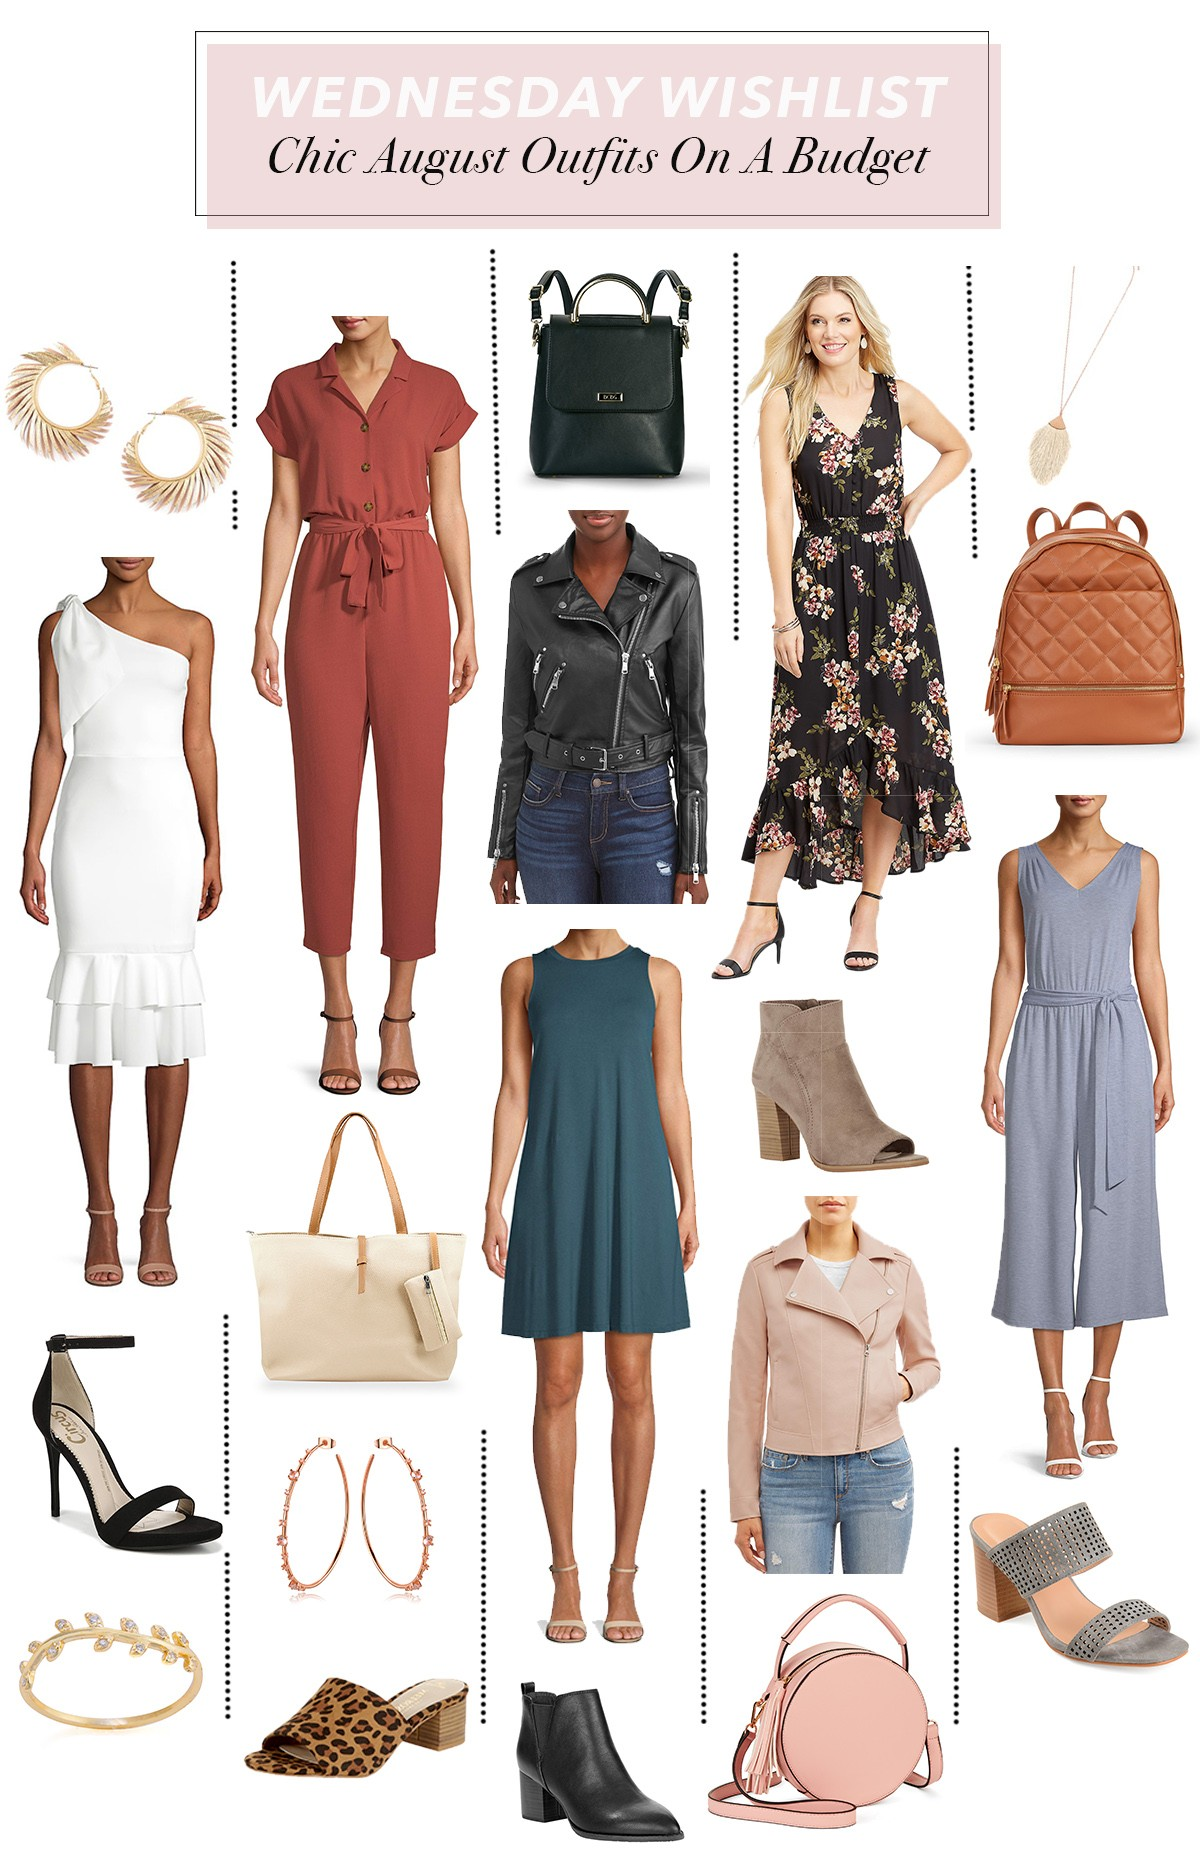 August Outfit Ideas Under $11  Wednesday Wishlist